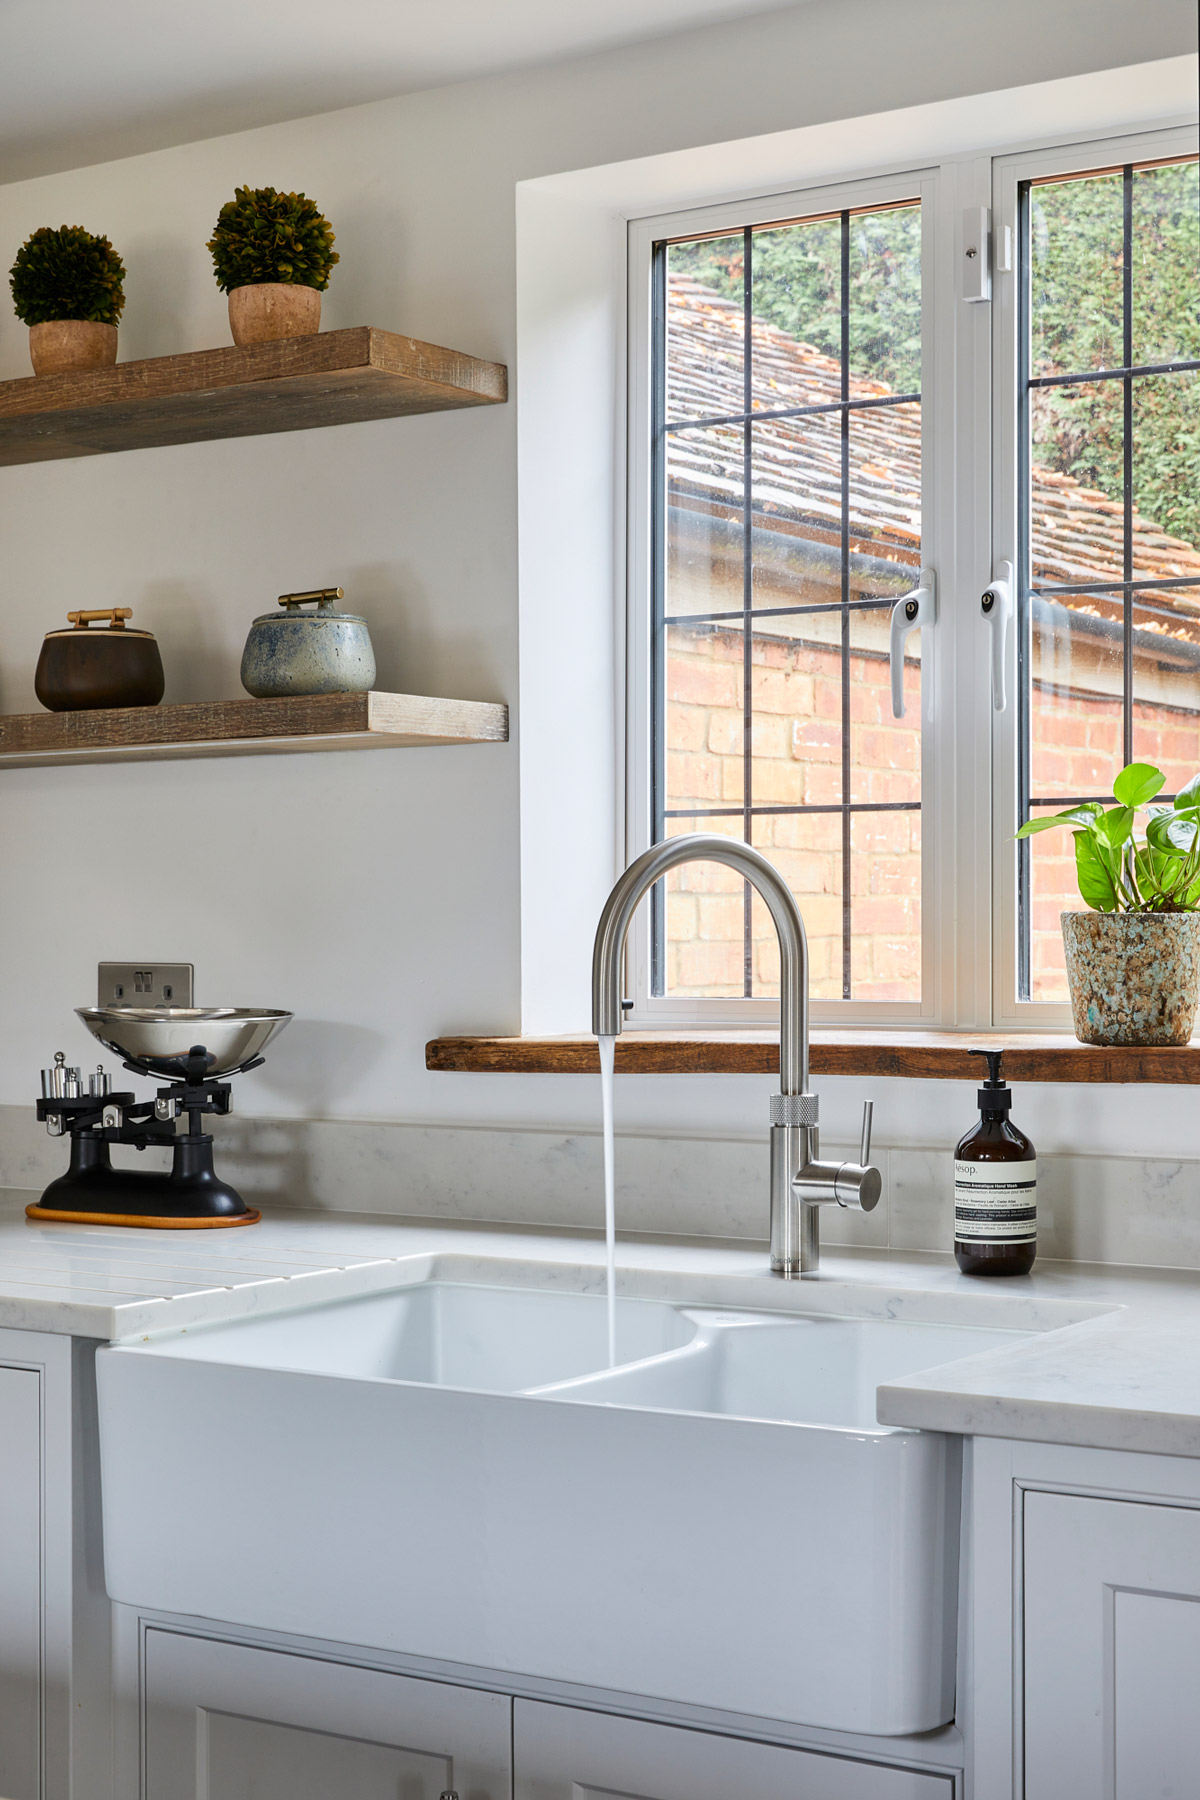 1810 ceramic Belfast sink with Quooker boiling water tap